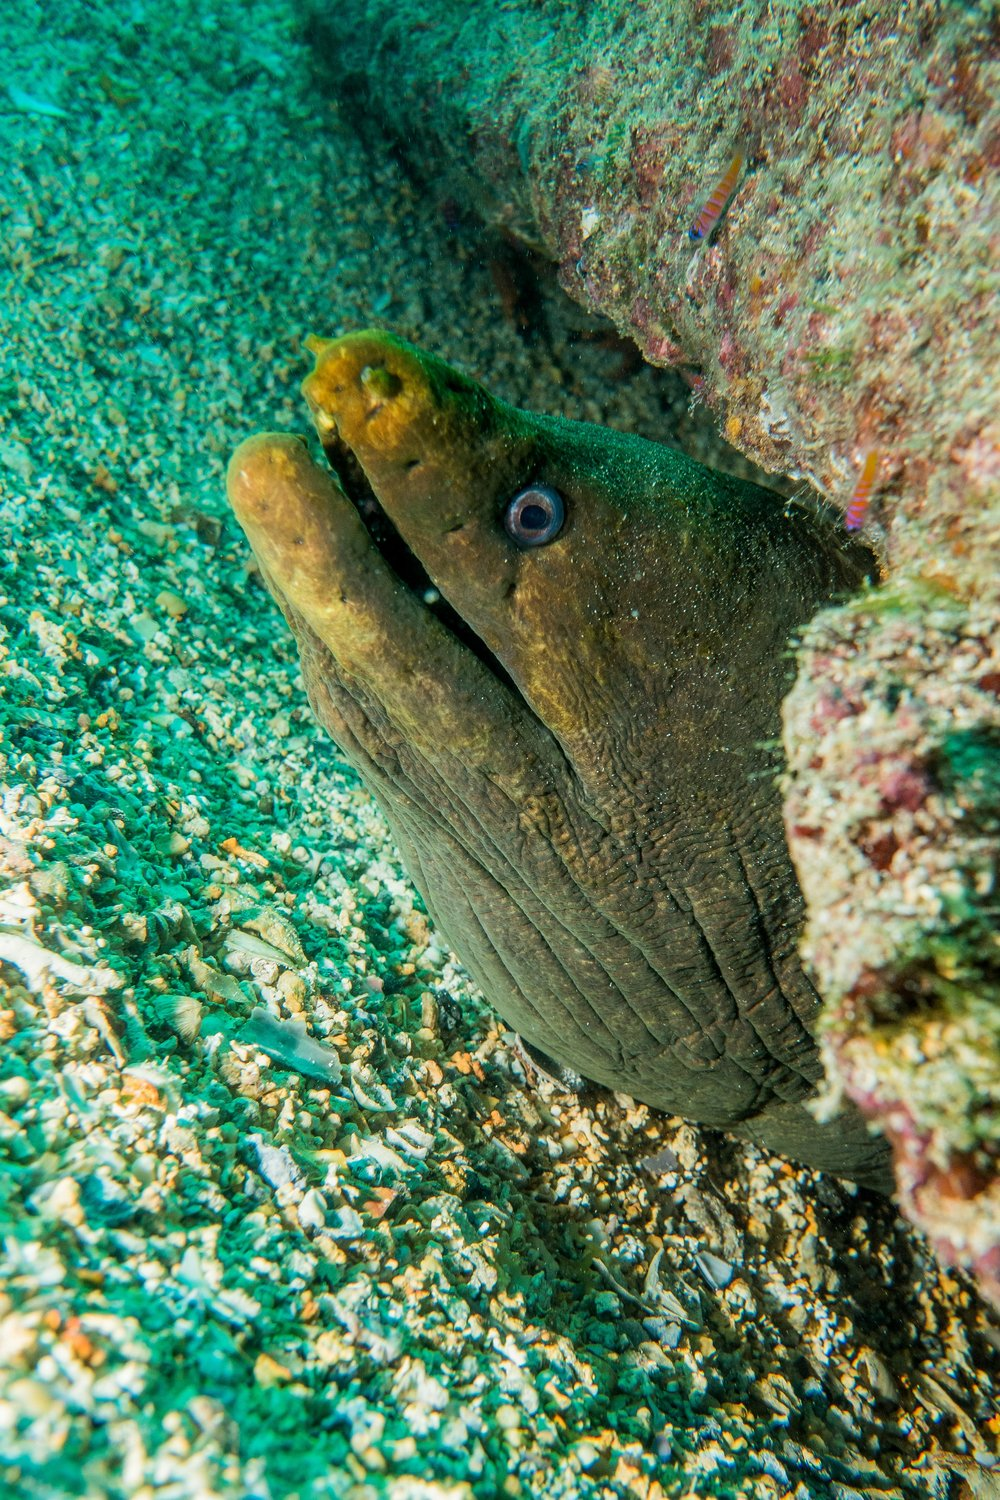 A Panamic Moray Eel.